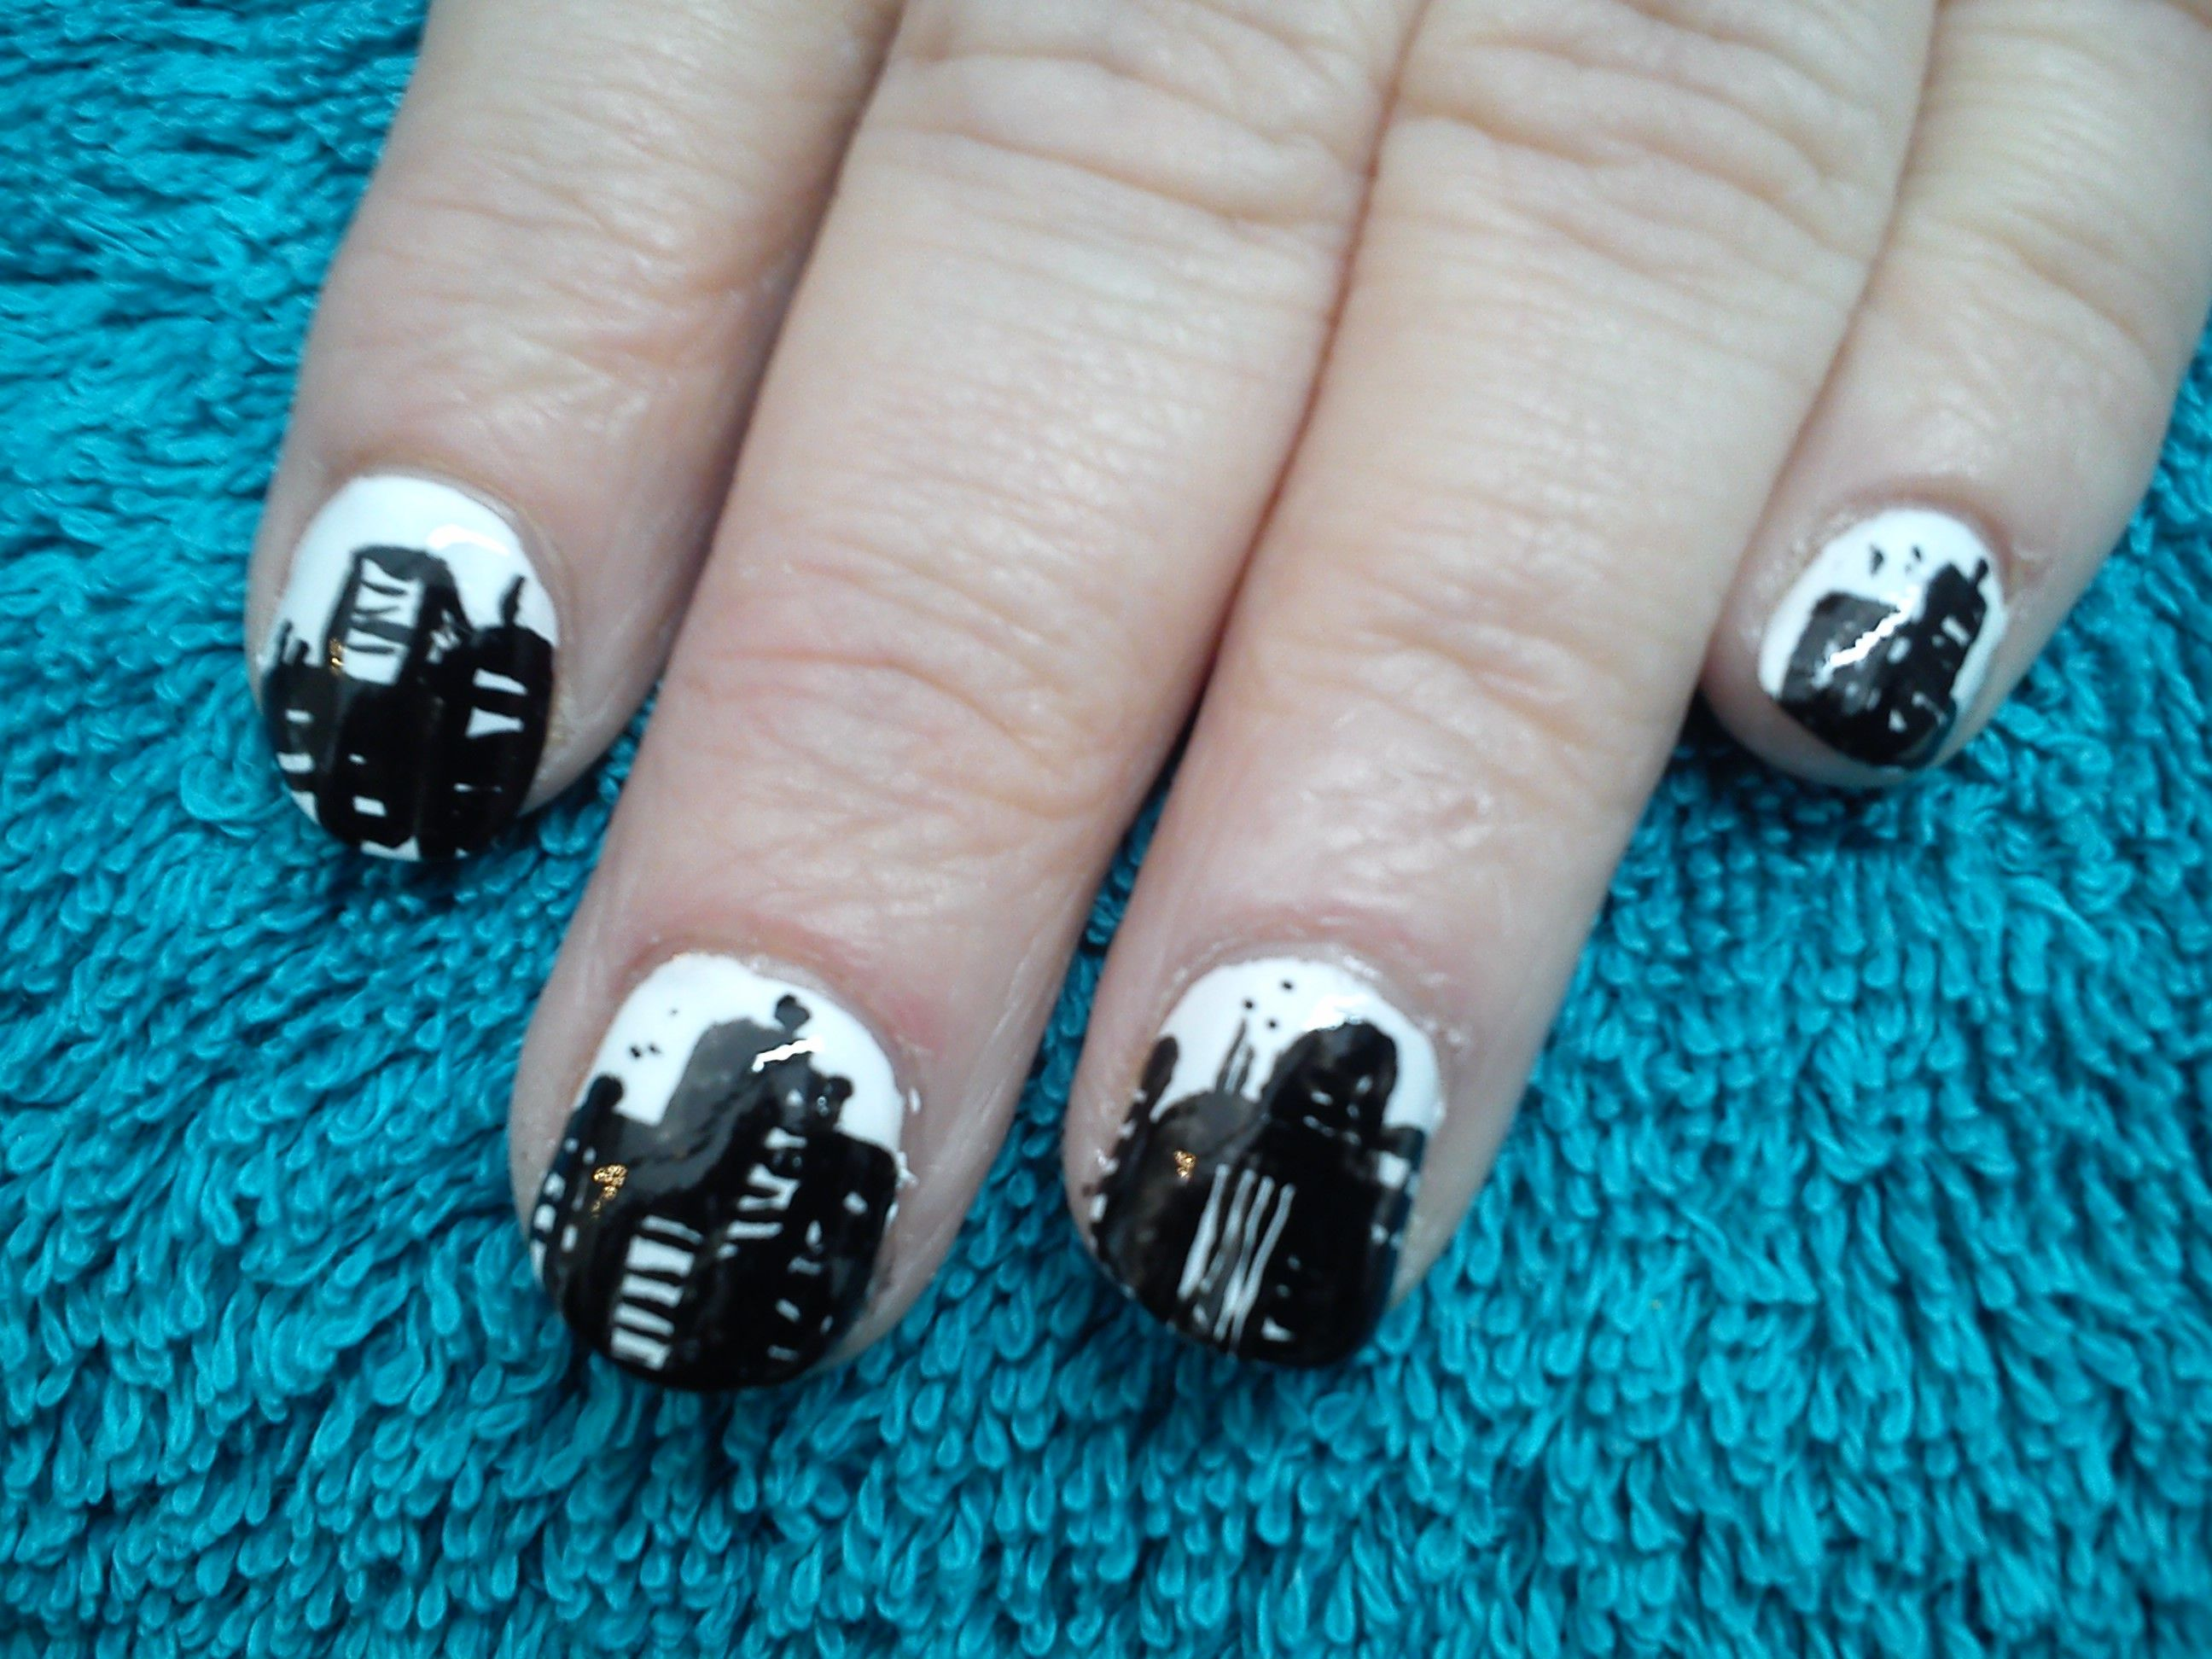 New york nail design in monochrome   Fun and Novelty Nail art ...